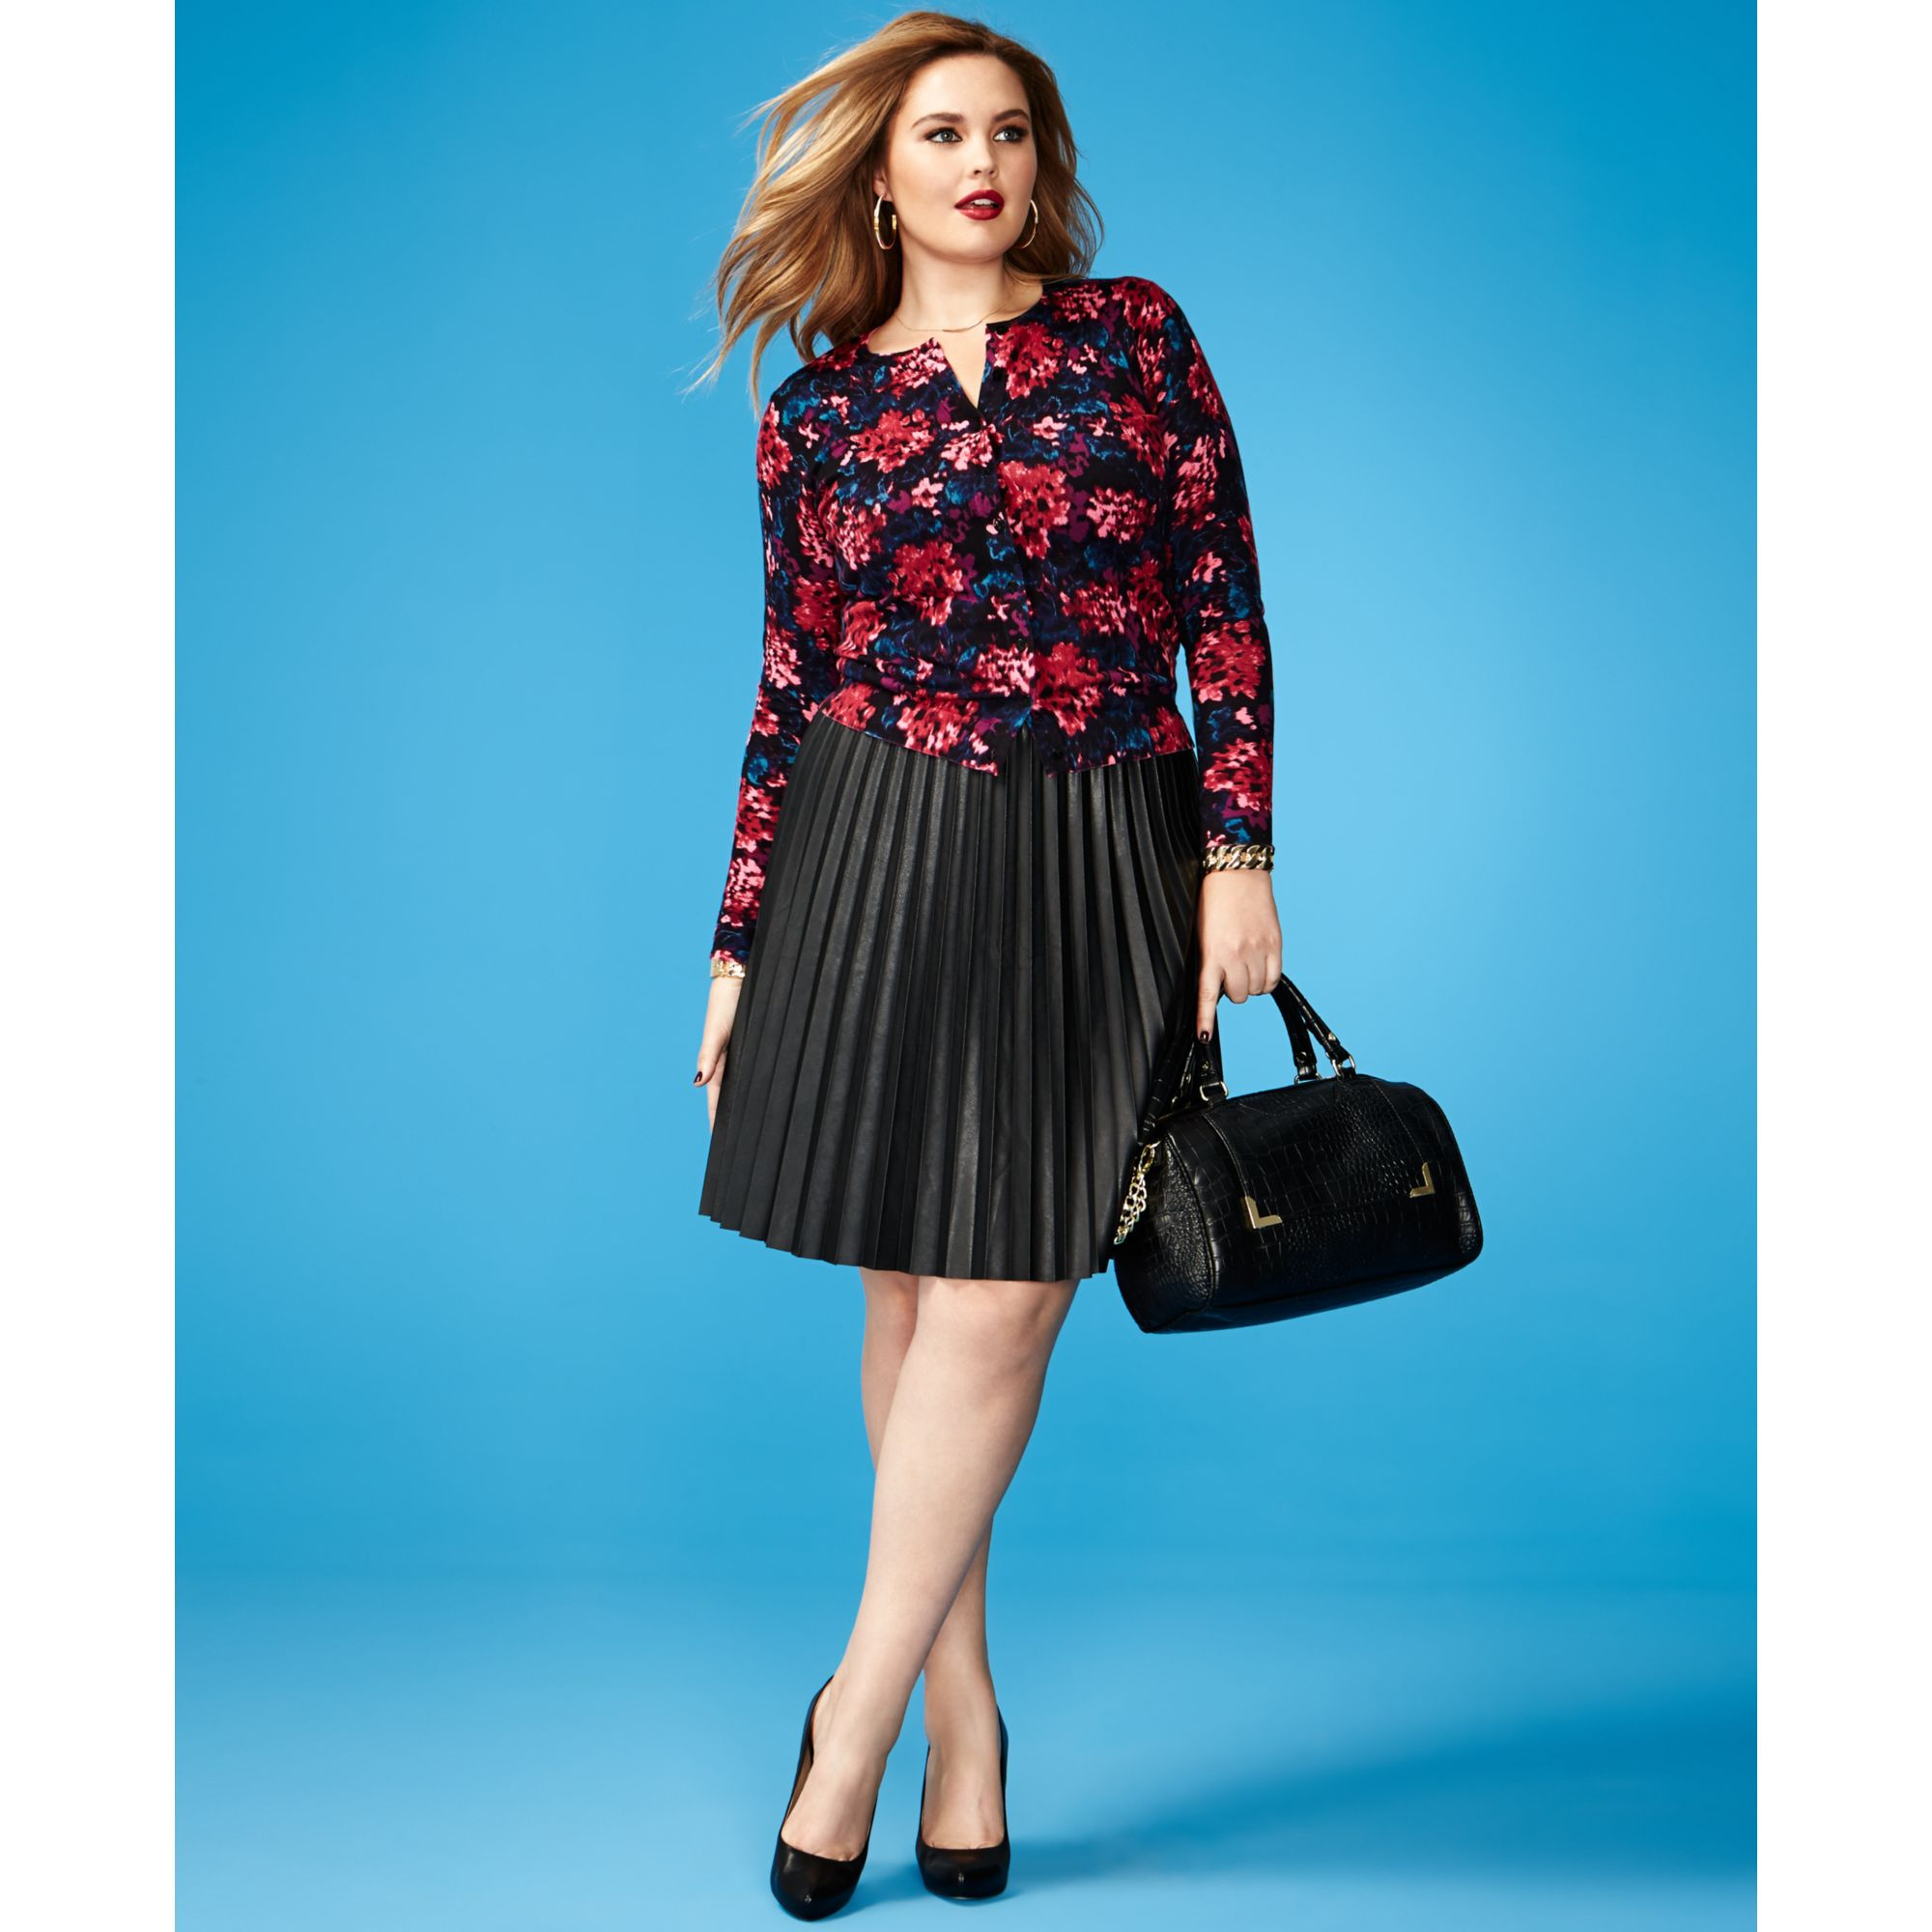 Plus Size Leather Skirt Outfits